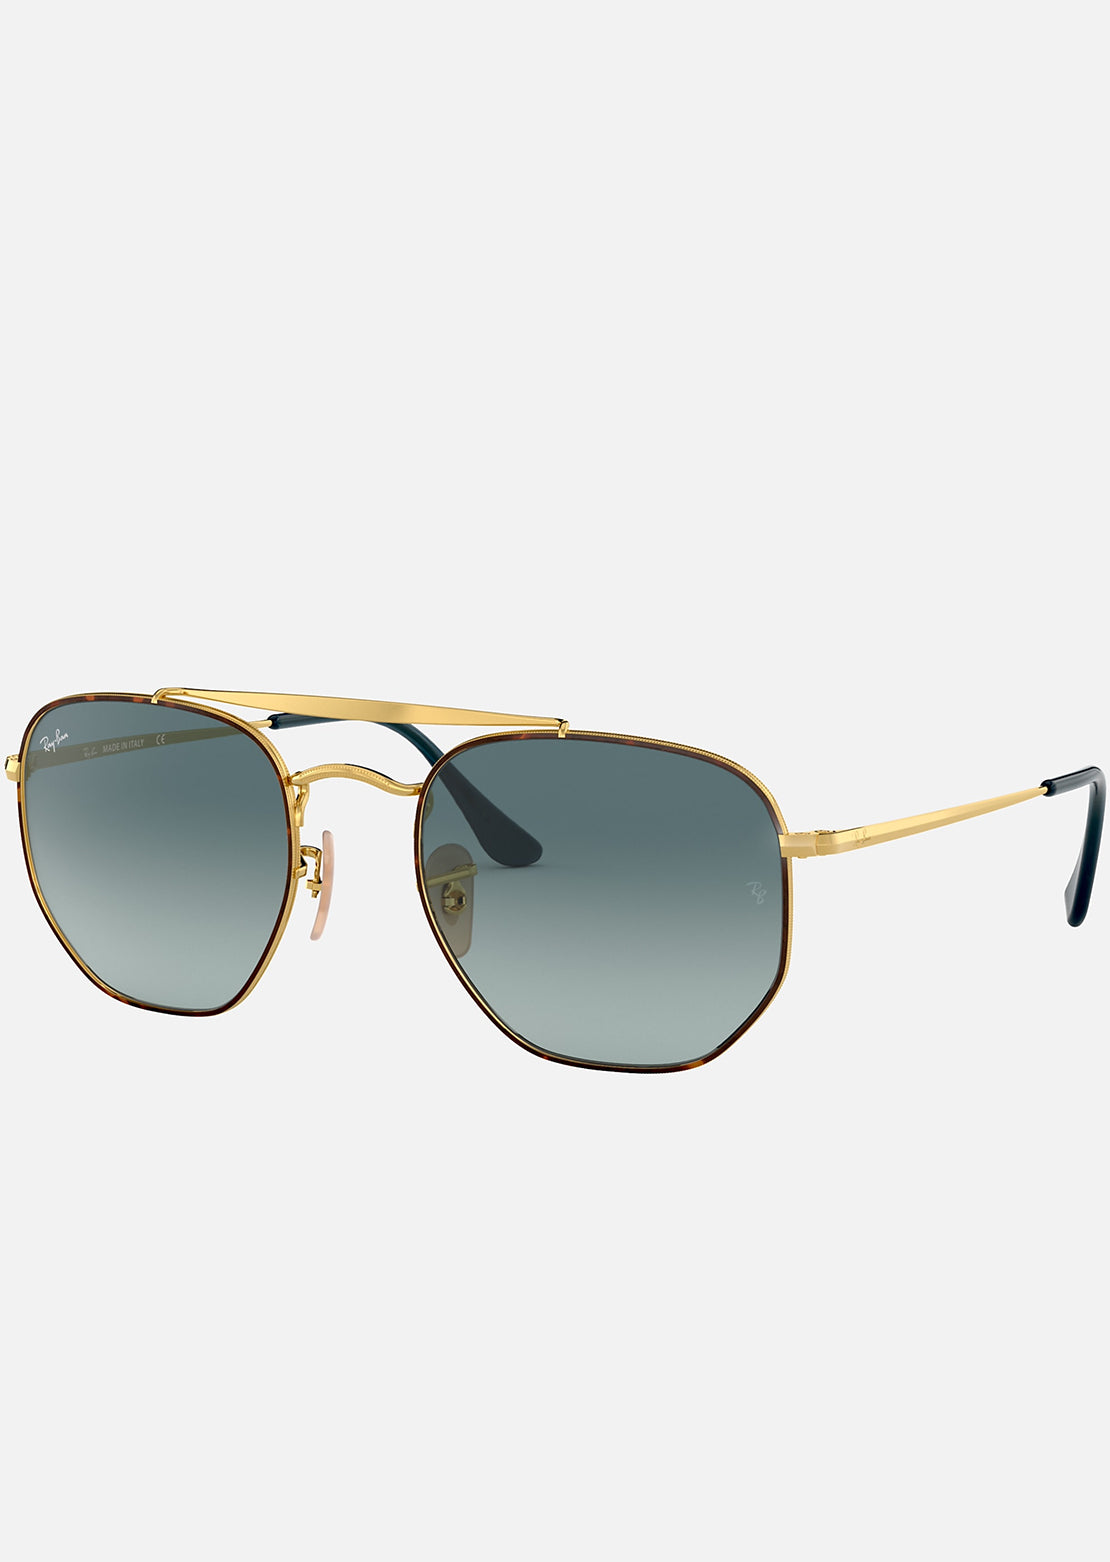 Ray-Ban RB3648 Marshal Sunglasses Havana/Blue Gradient Grey